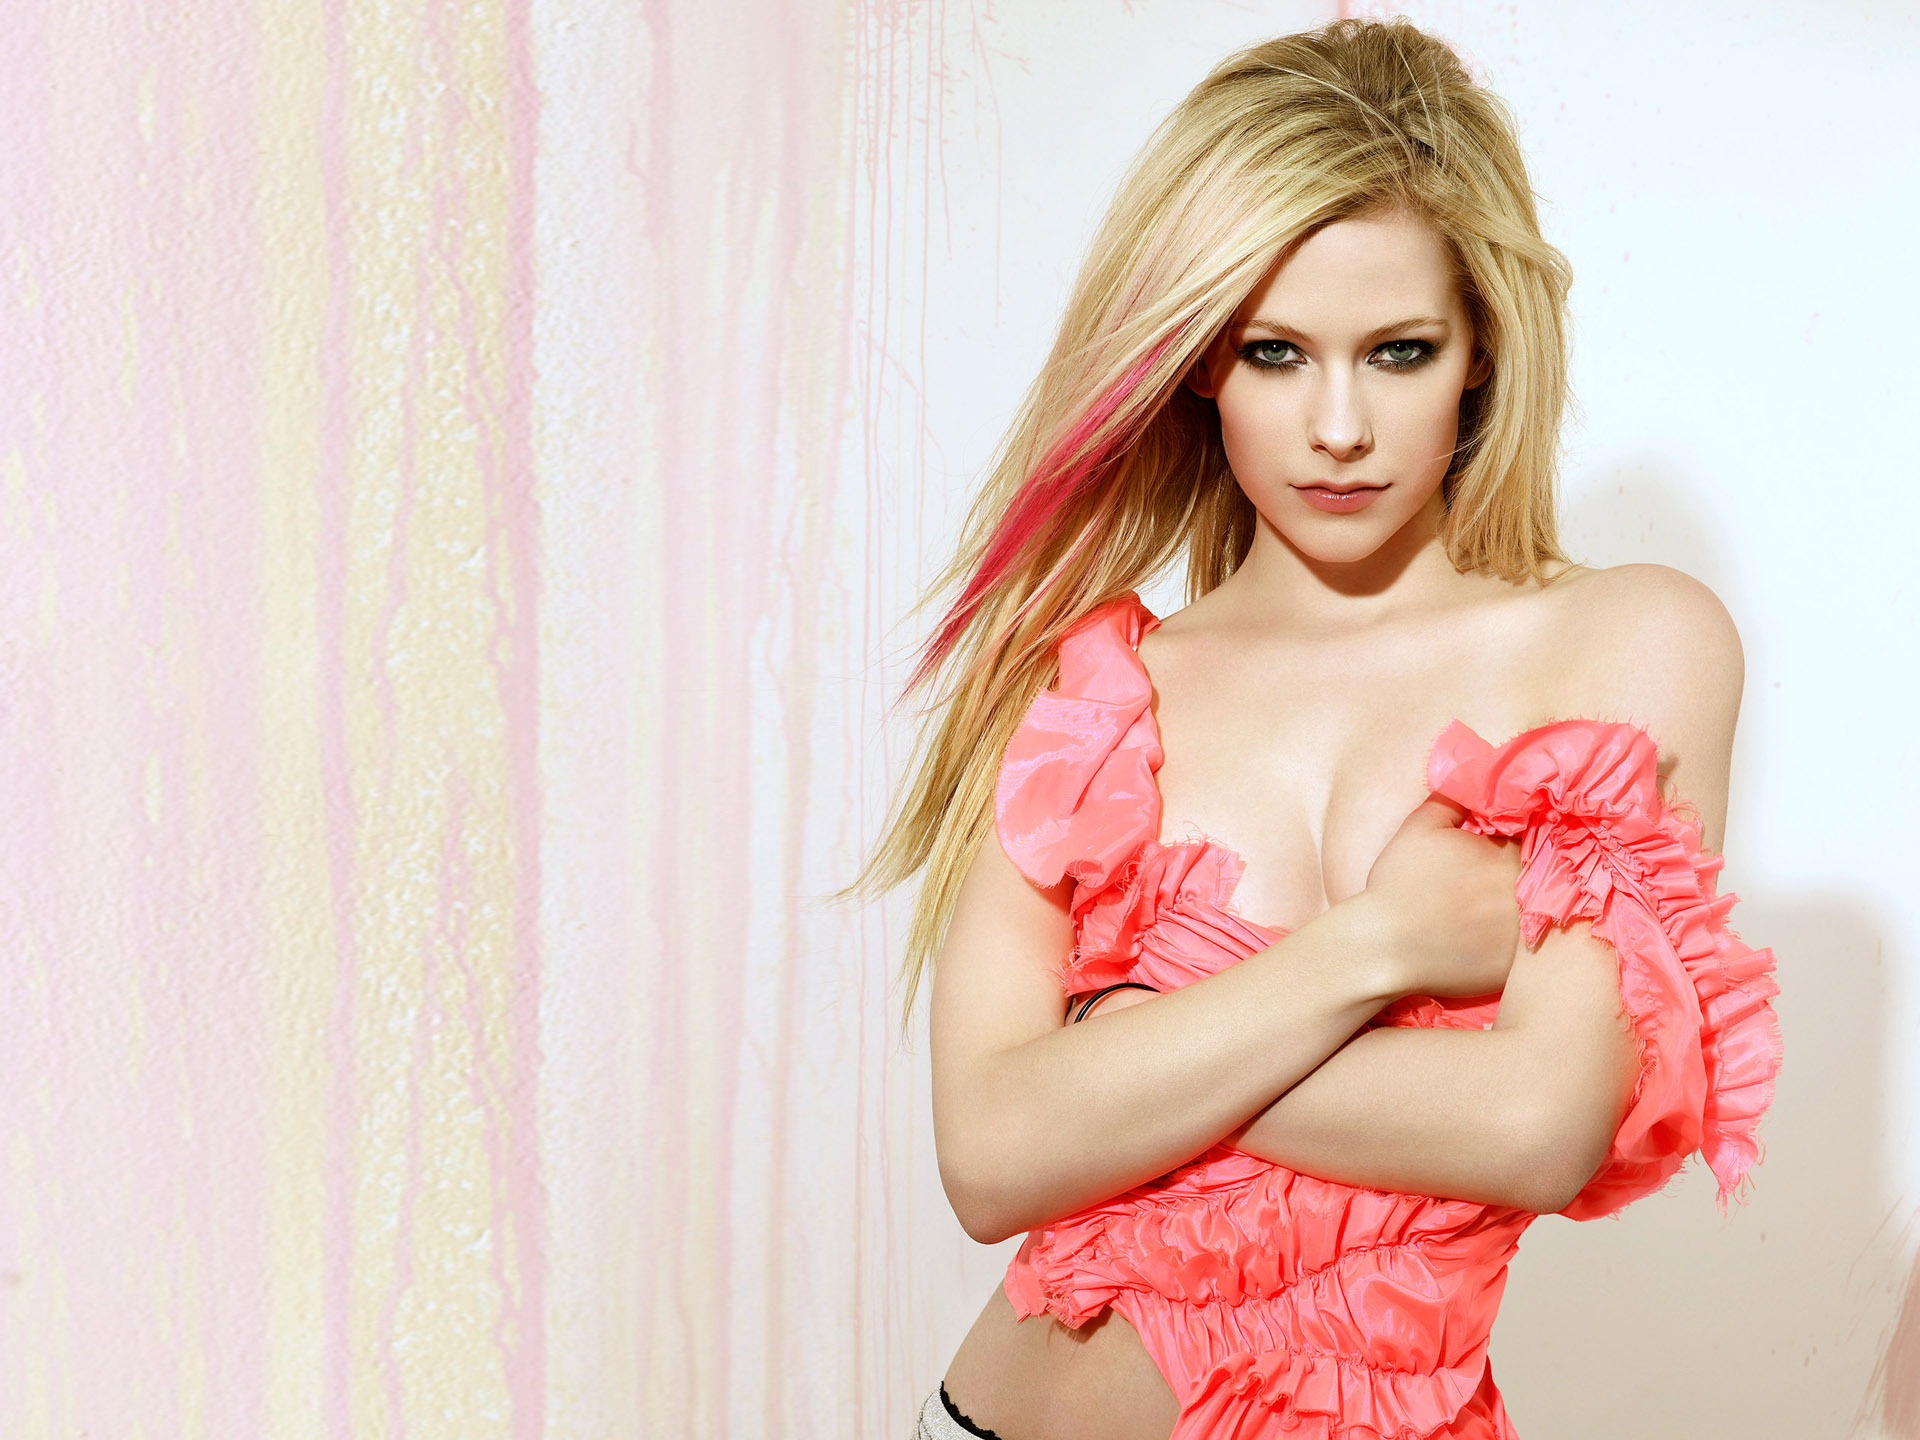 Avril Lavigne Wallpapers sexy hot pink